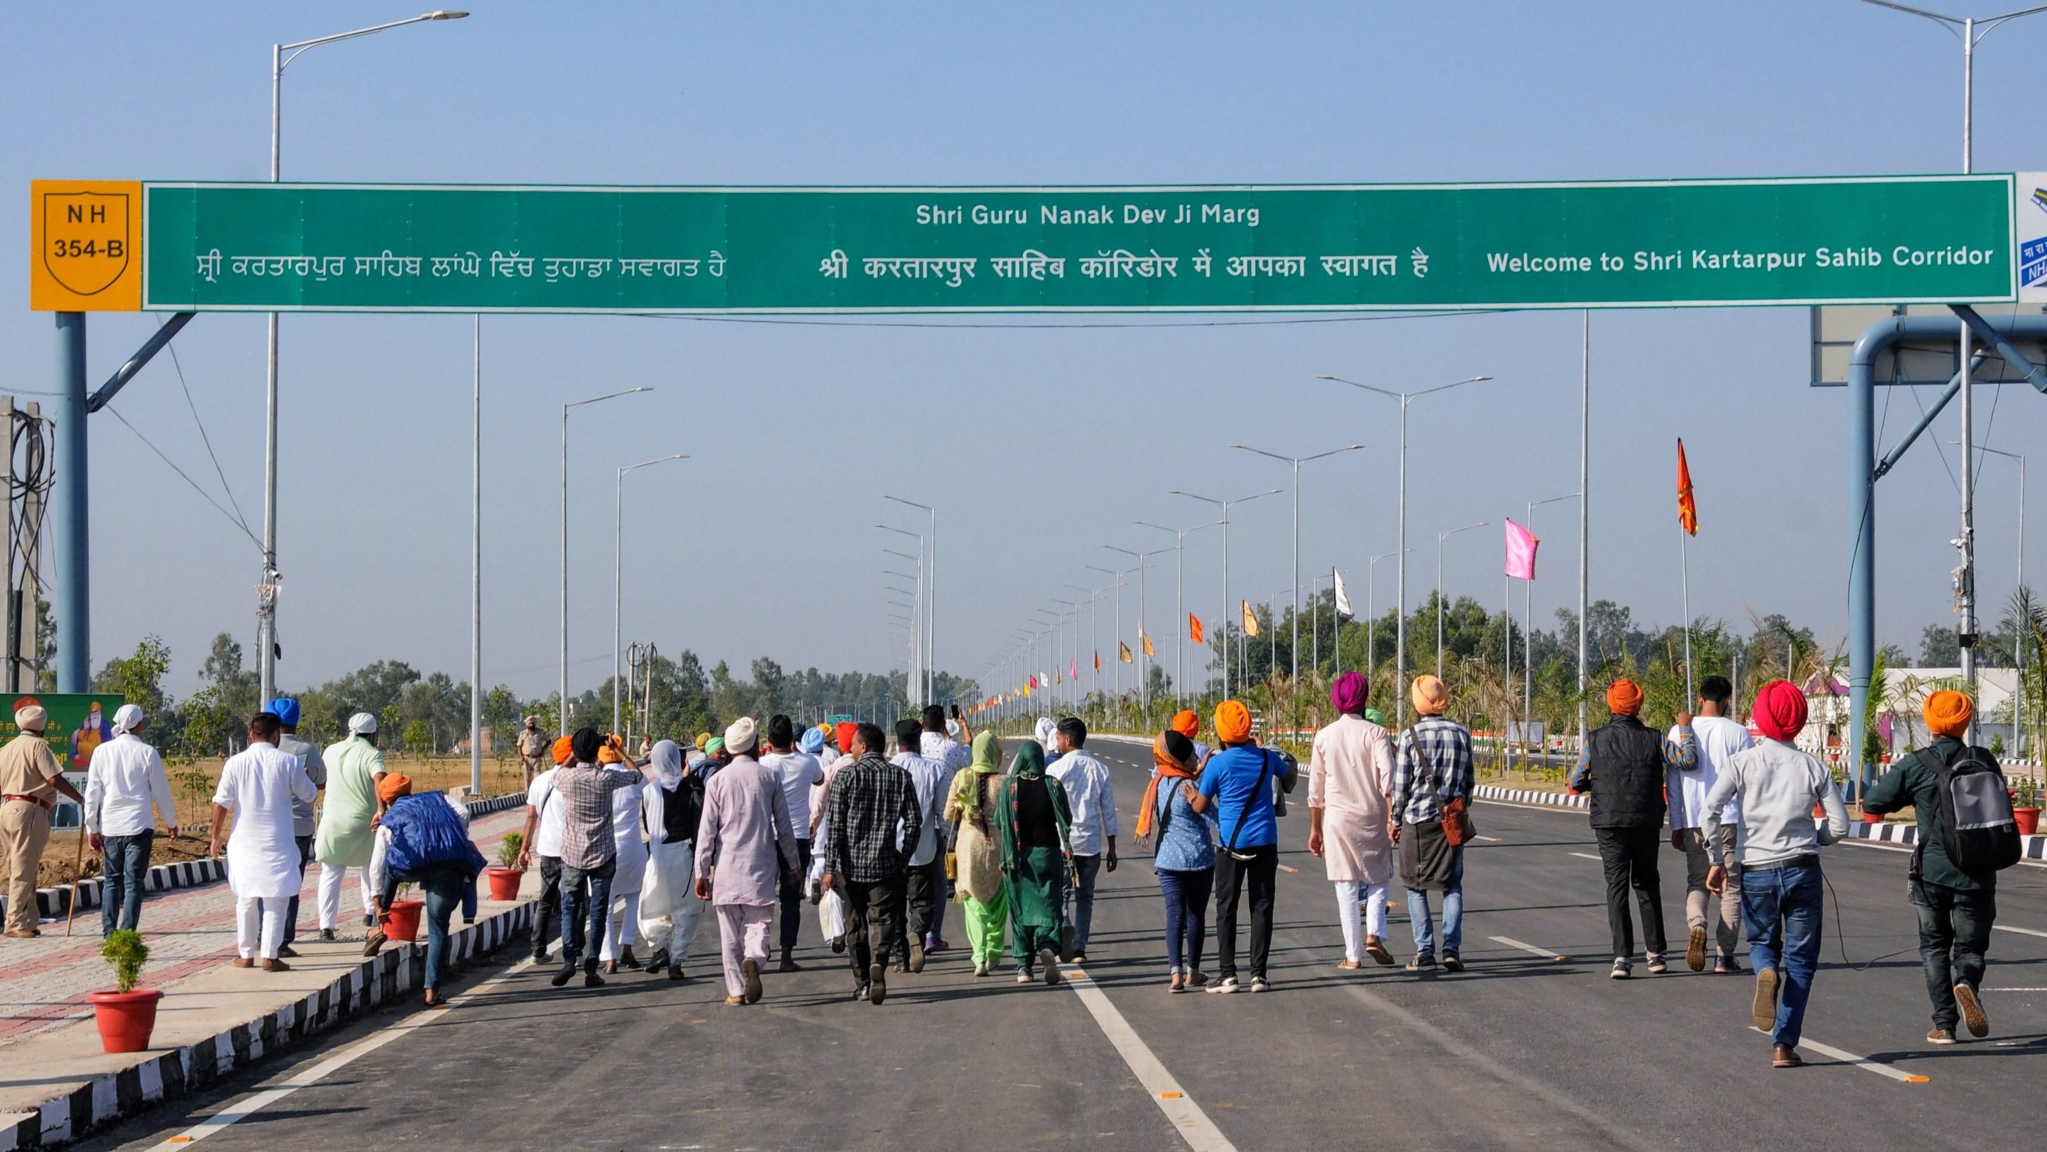 PMC Scam: 1,950 Sikhs from Maharashtra Unable to Visit Kartarpur